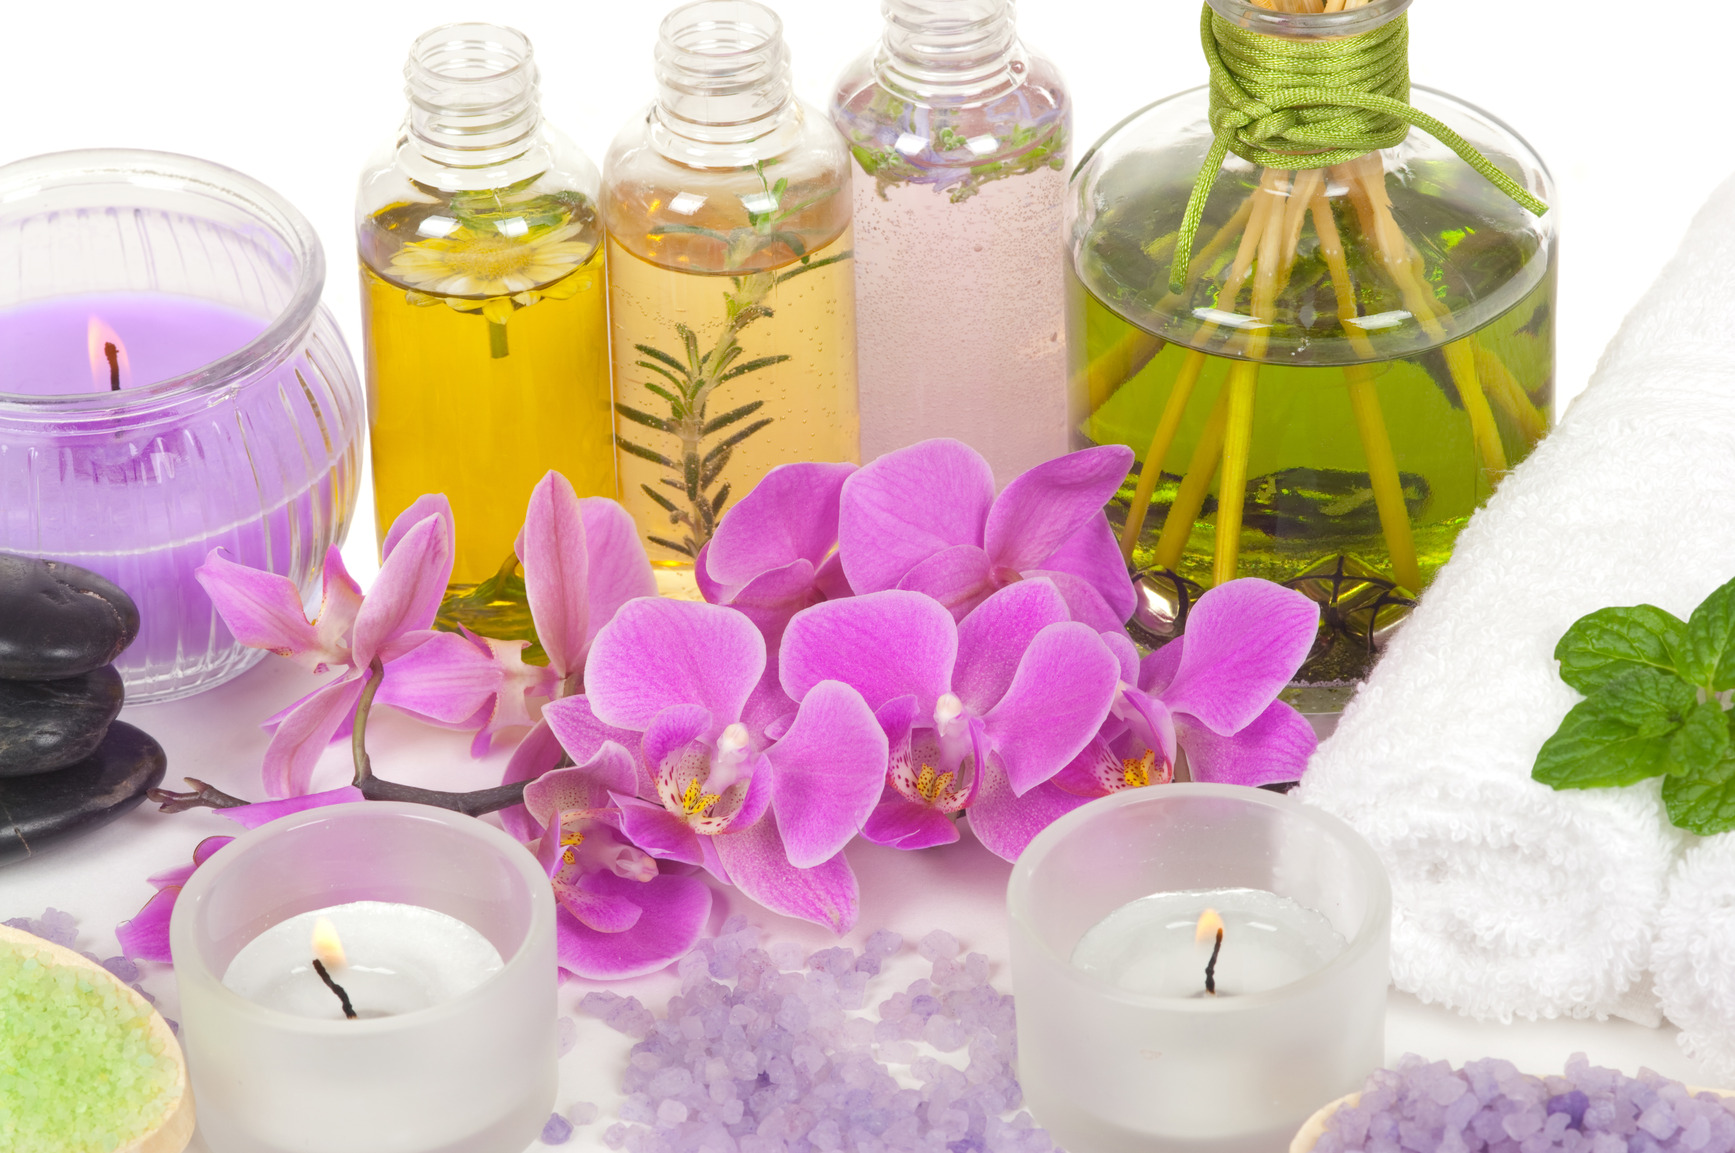 Spa scene with aromatherapy, massage oil, bath salt, orchid and aromatic candles